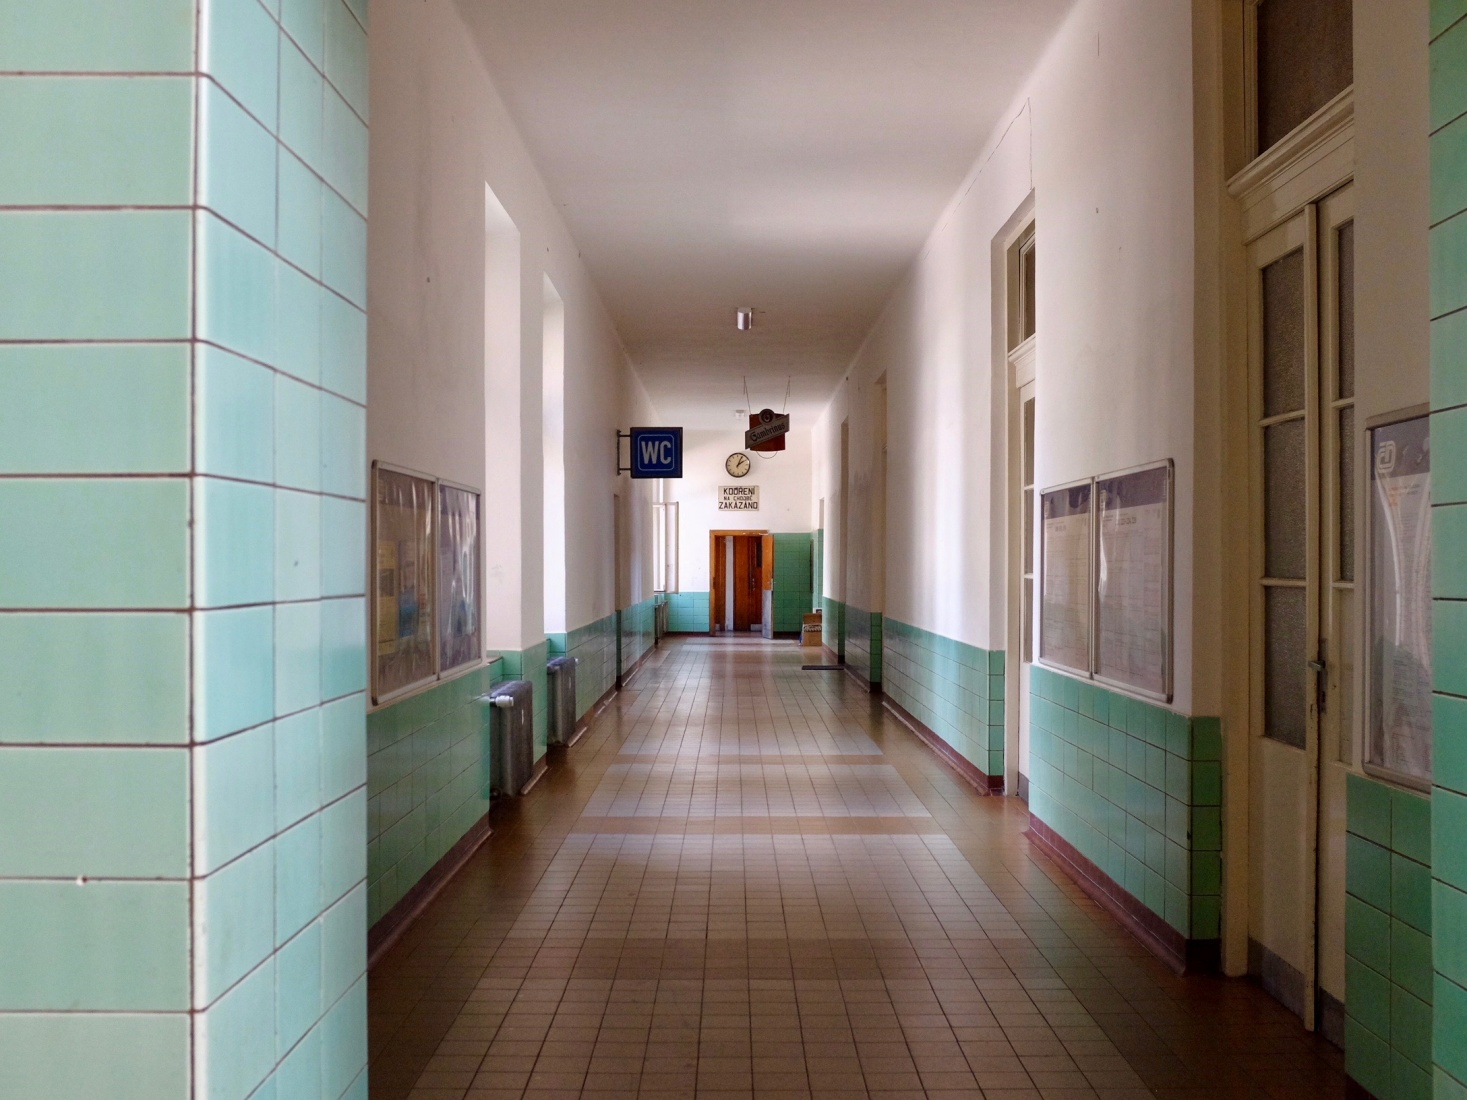 A long corridor at the České Velenice, railroad station, in the Czech Republic.